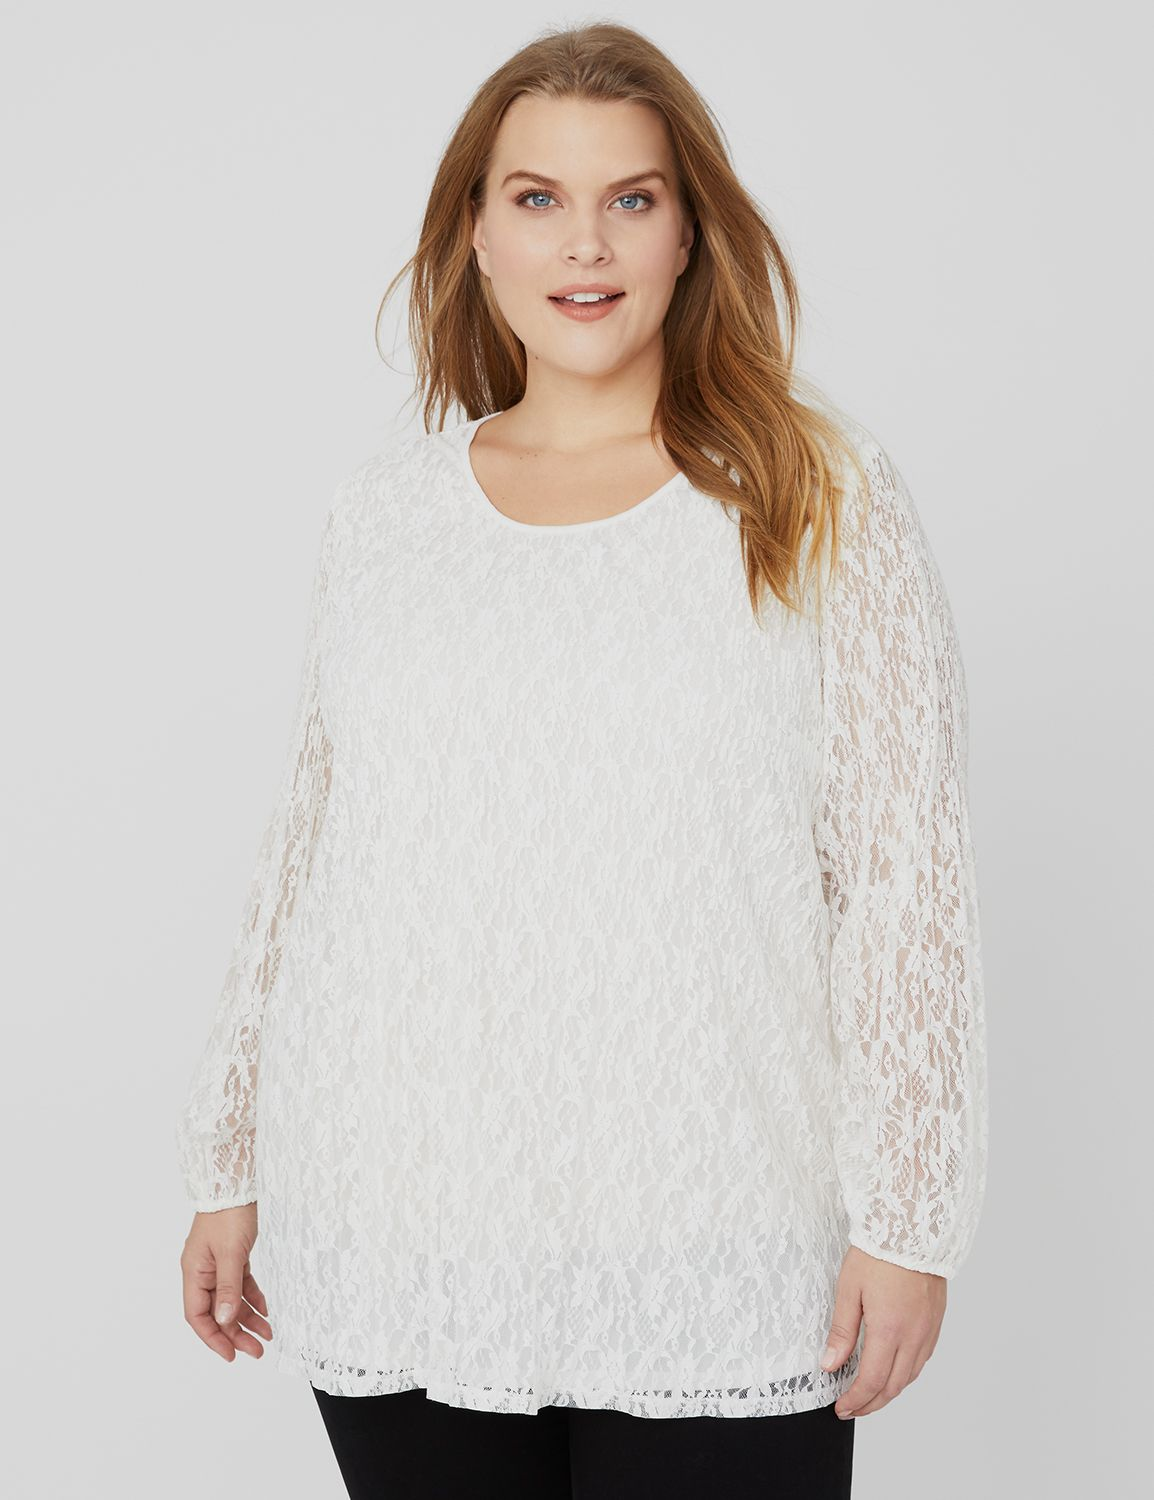 Pleated Lace Top Lace Cold Shoulder Pleater MP-300088761